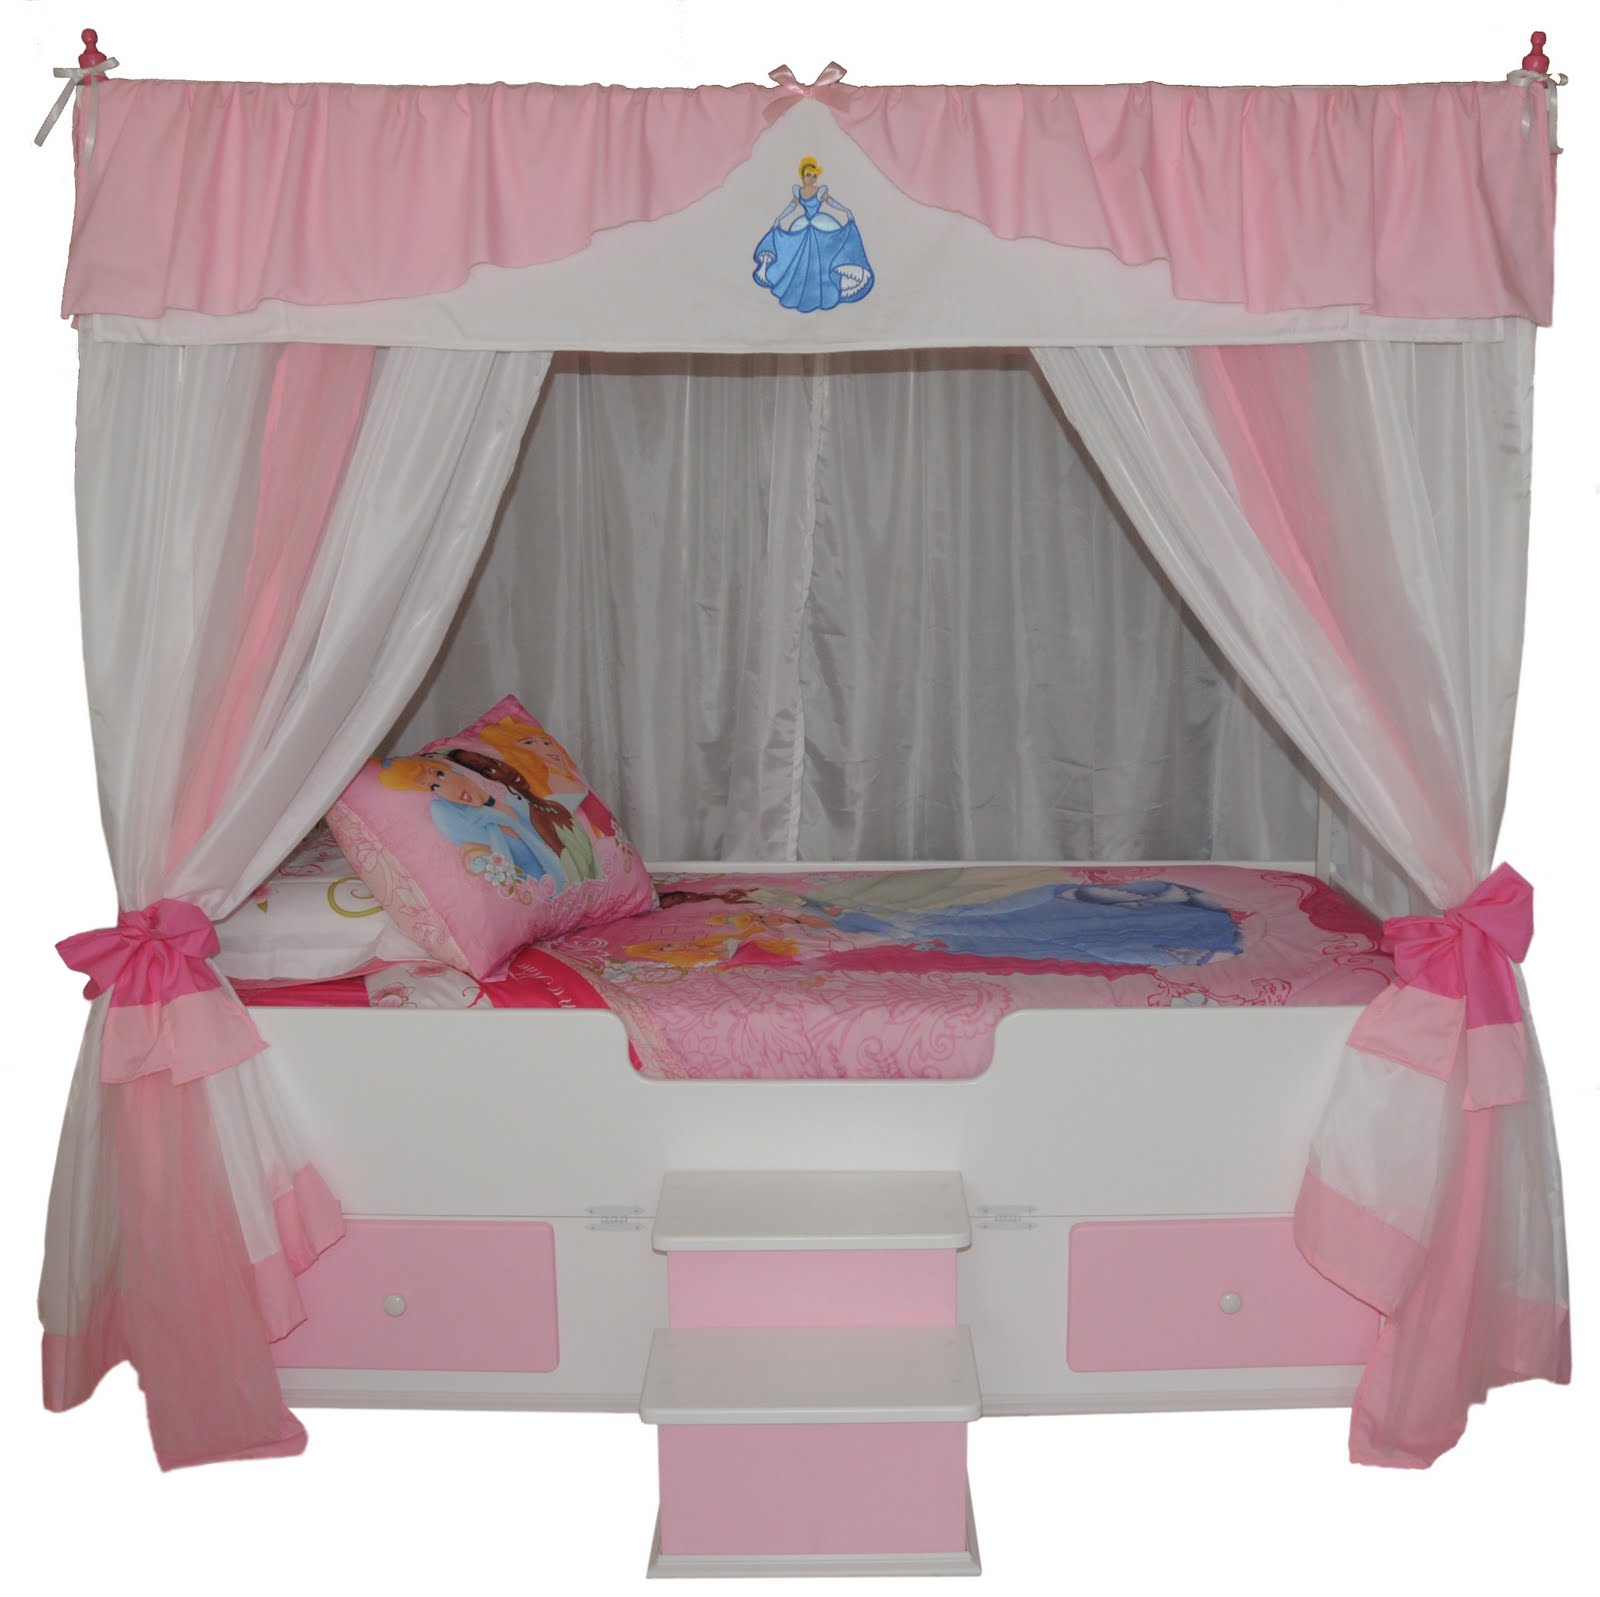 Princess Canopy Beds: March 2011